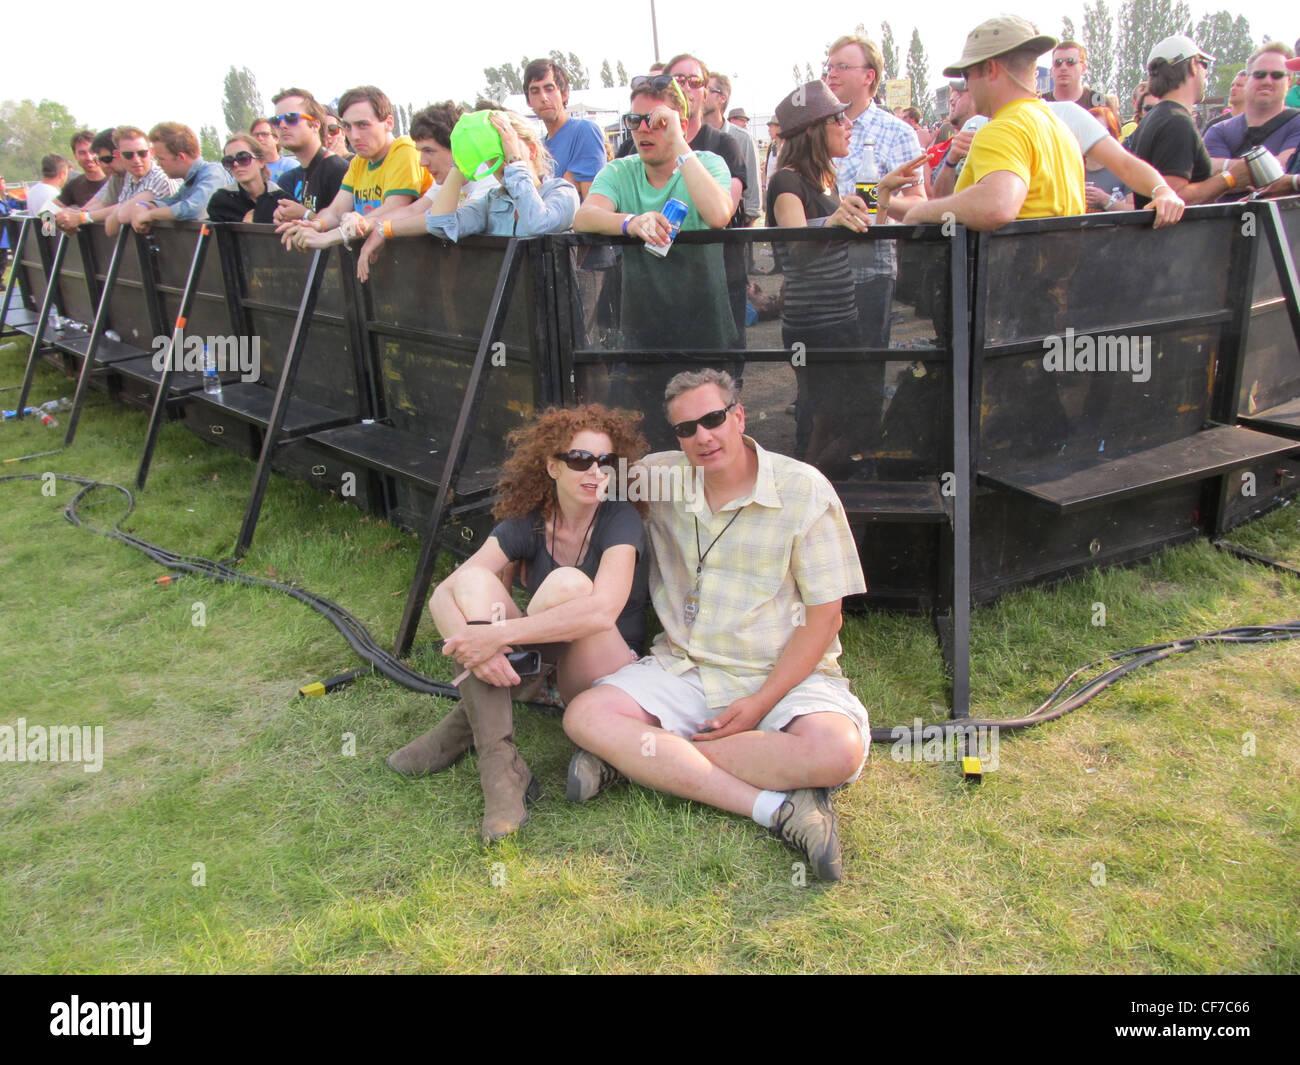 Two people sitting in VIP media area at a music festival, separated by barricade from general admission crowd. - Stock Image